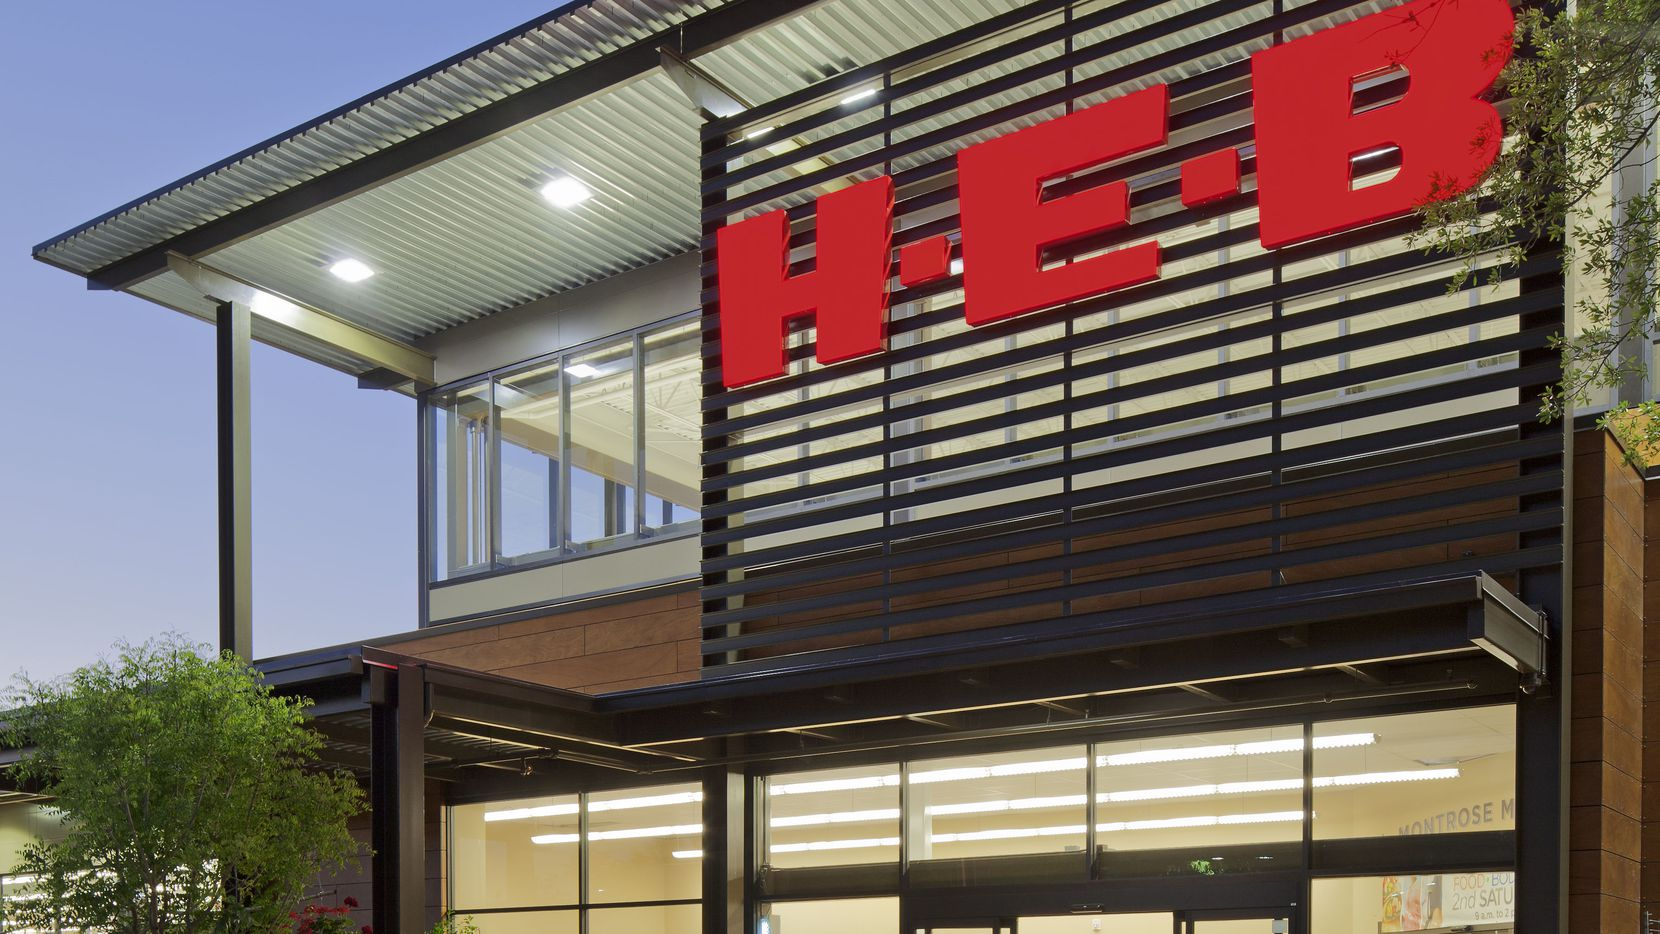 H-E-B will break ground on two stores this summer in Frisco and Plano.